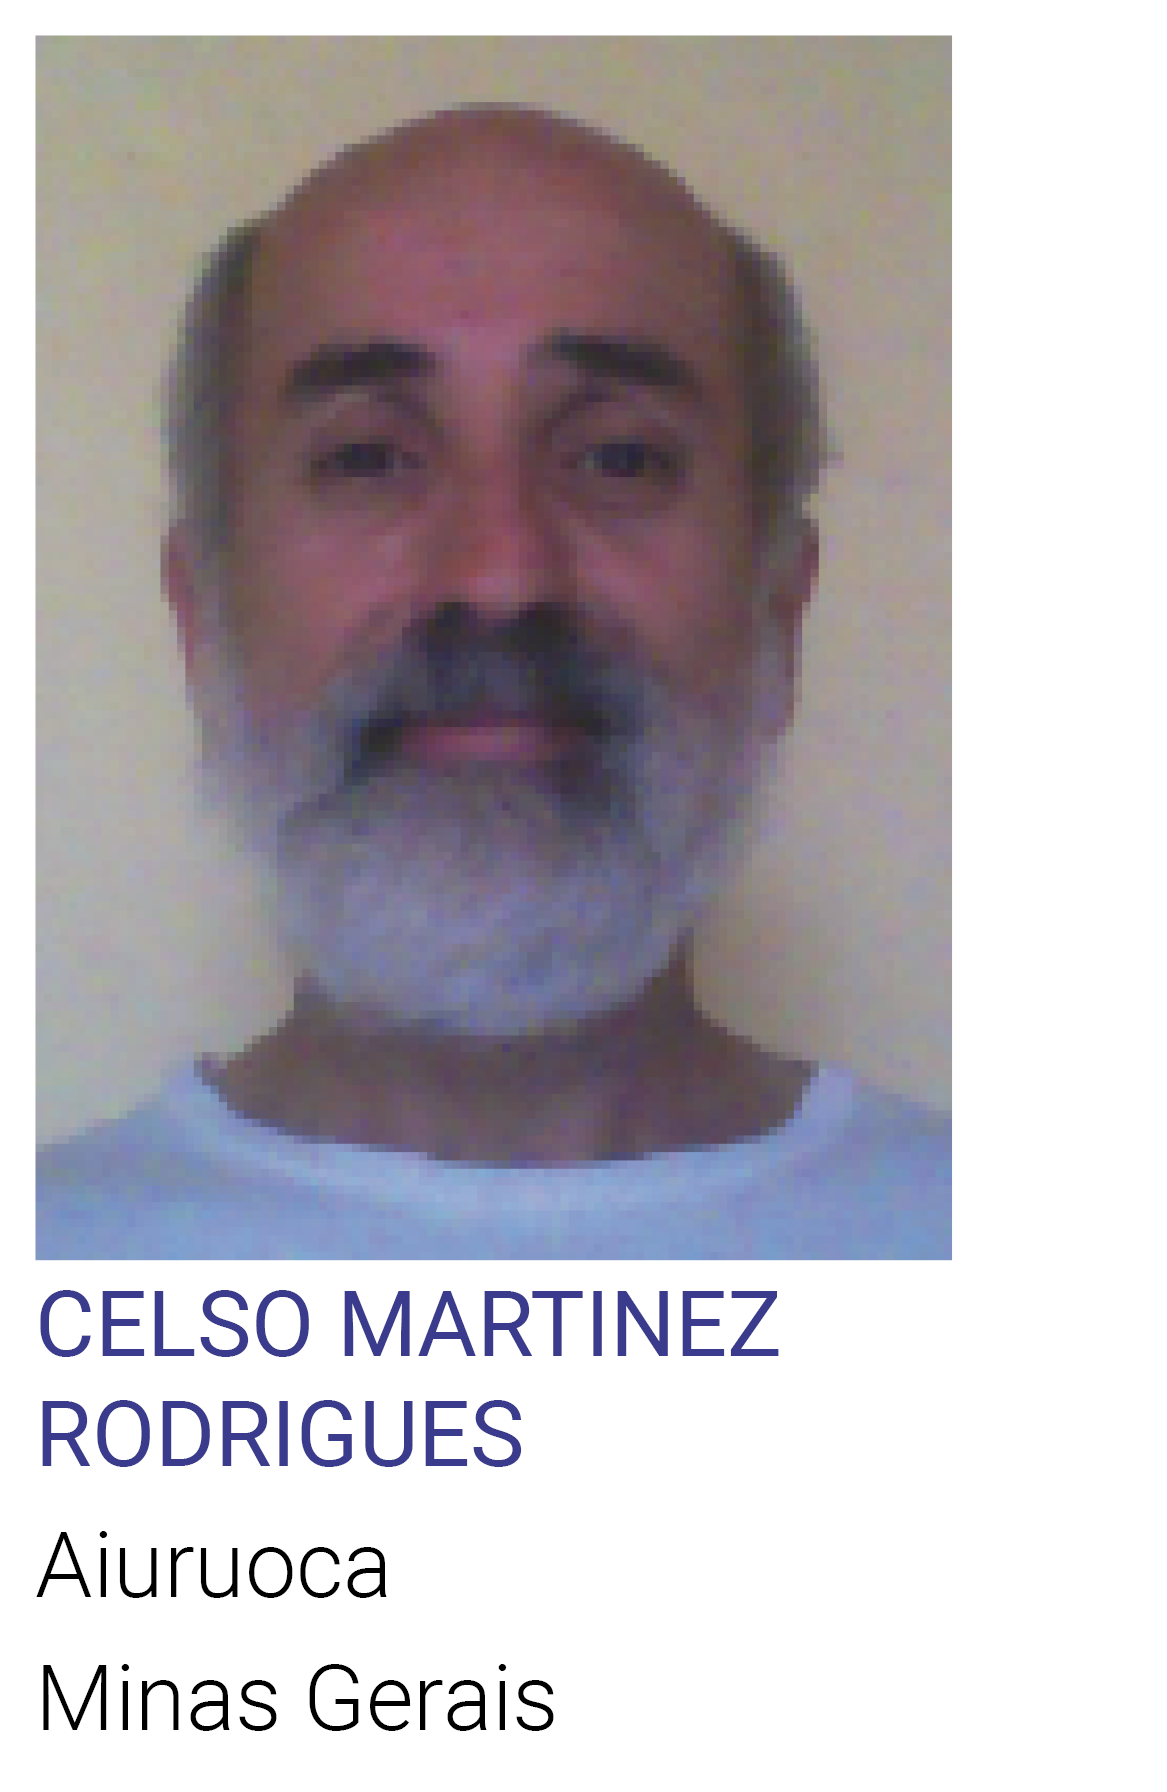 CELSO MARTINEZ RODRIGUES